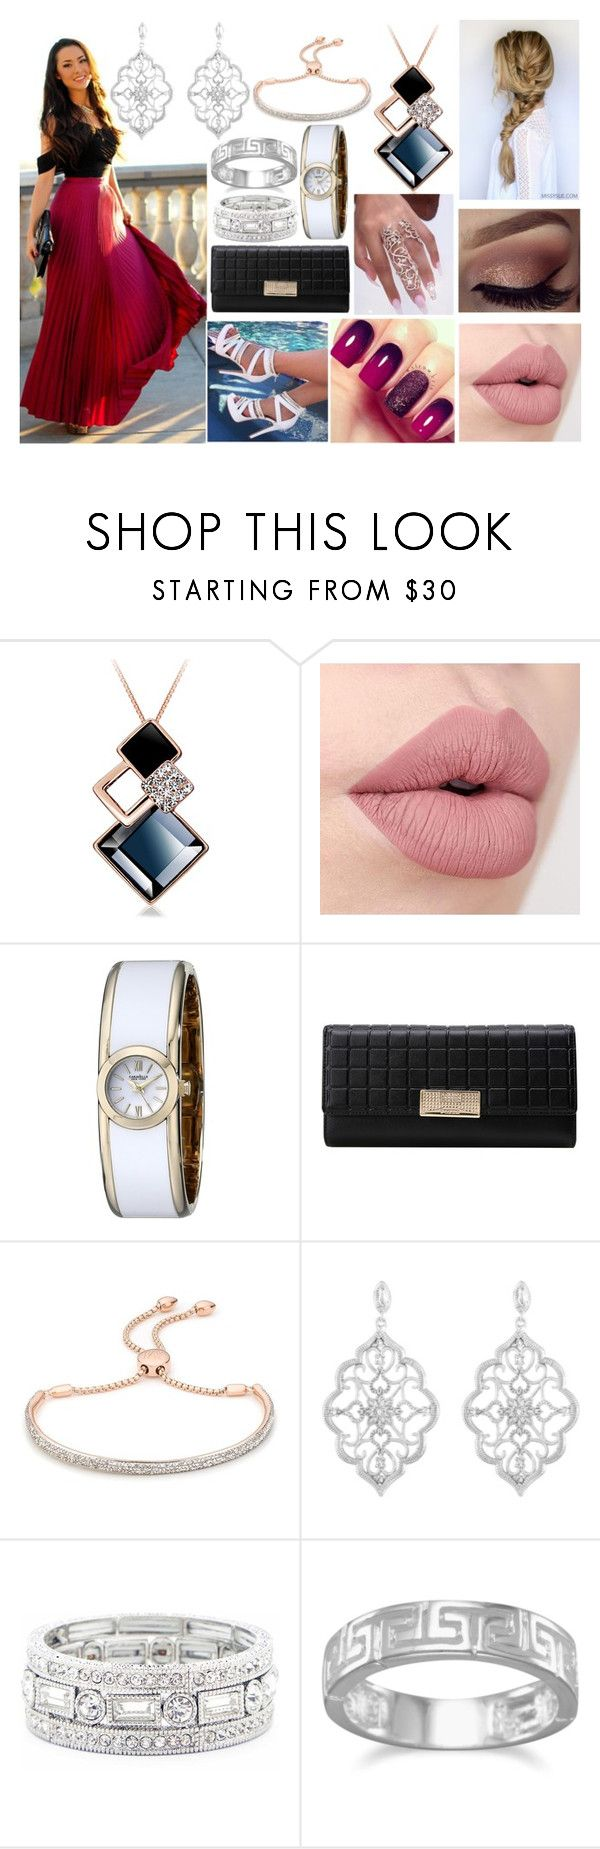 """""""Sonnie #3"""" by uhumhoney ❤ liked on Polyvore featuring OPI, Caravelle by Bulova, Monica Vinader, Kabella Jewelry, Sole Society and BillyTheTree"""